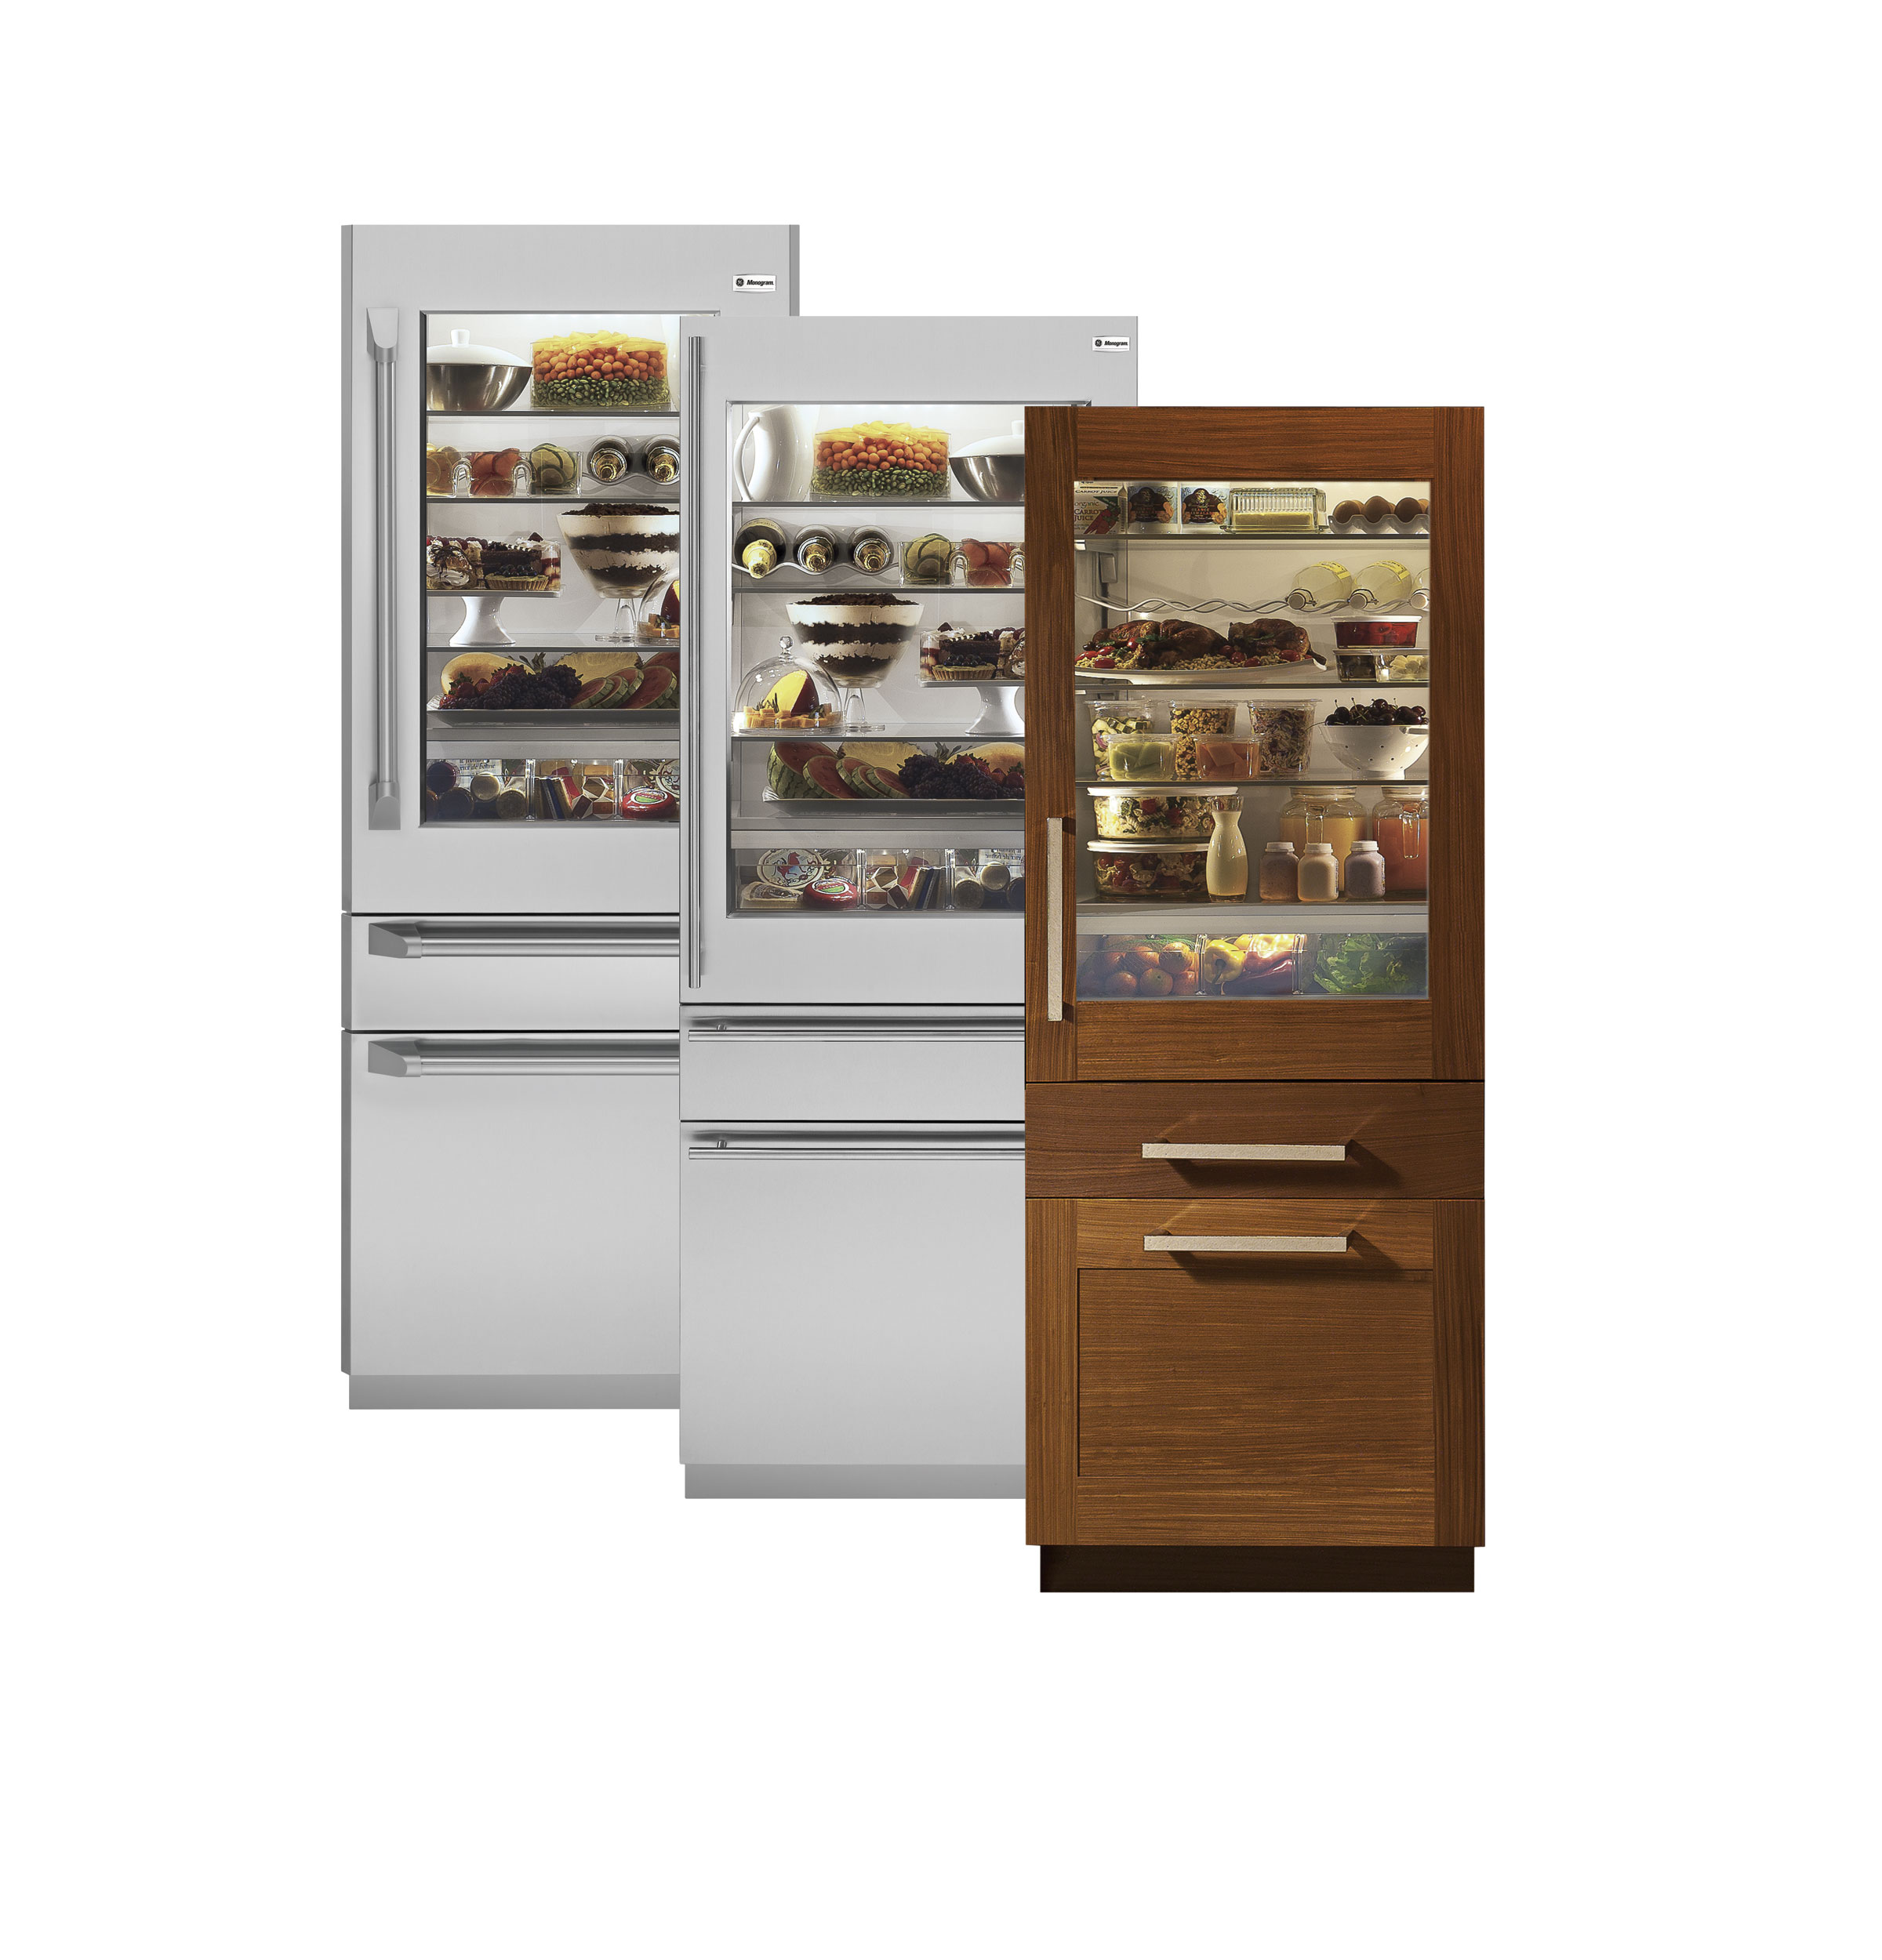 Adorale Brown And White Glass Door Refrigerator Residential Design With  Lower Storage And Slim Design